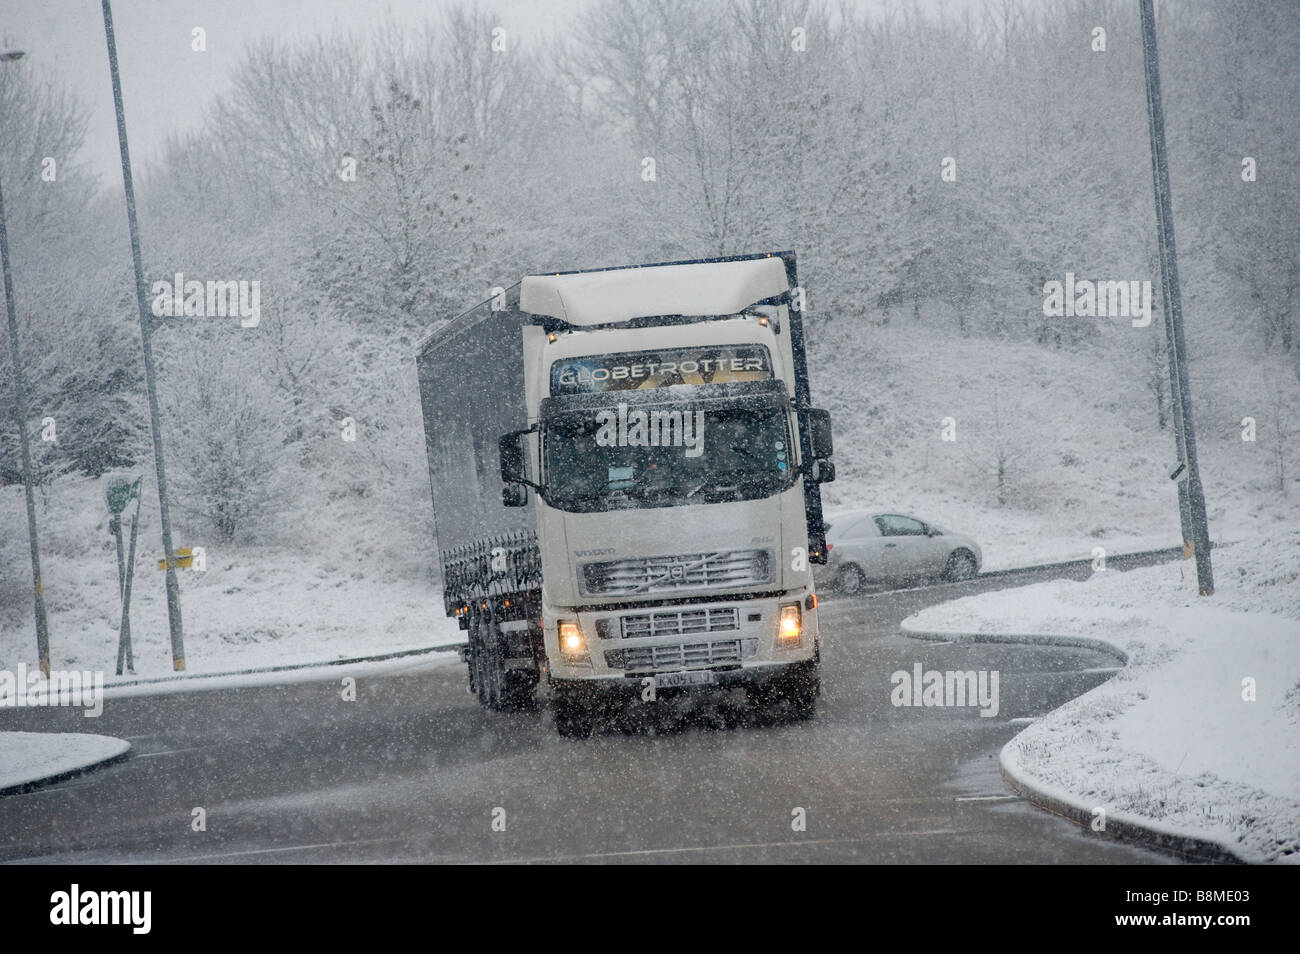 Volvo FH12 HGV lorry driving slowly on a snowy road in winter in England - Stock Image